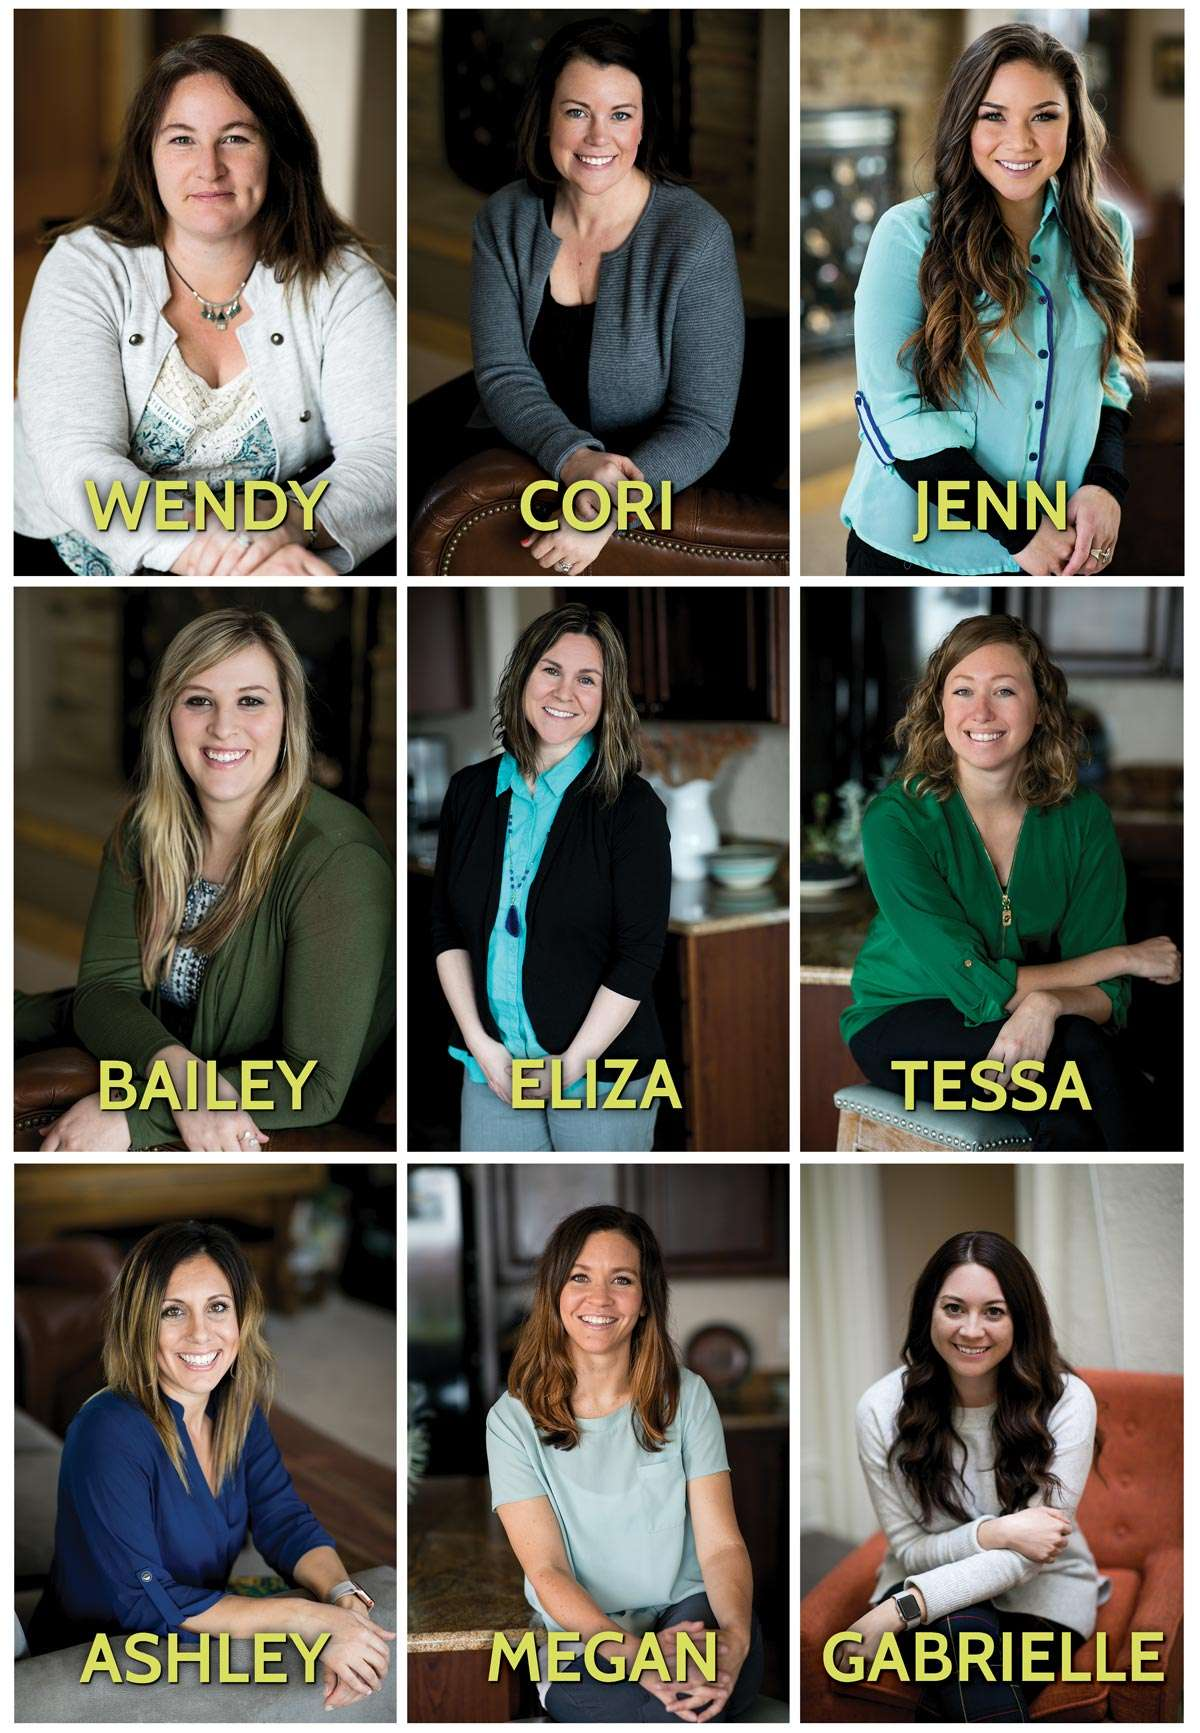 Photos of LIV Health's Case Managers